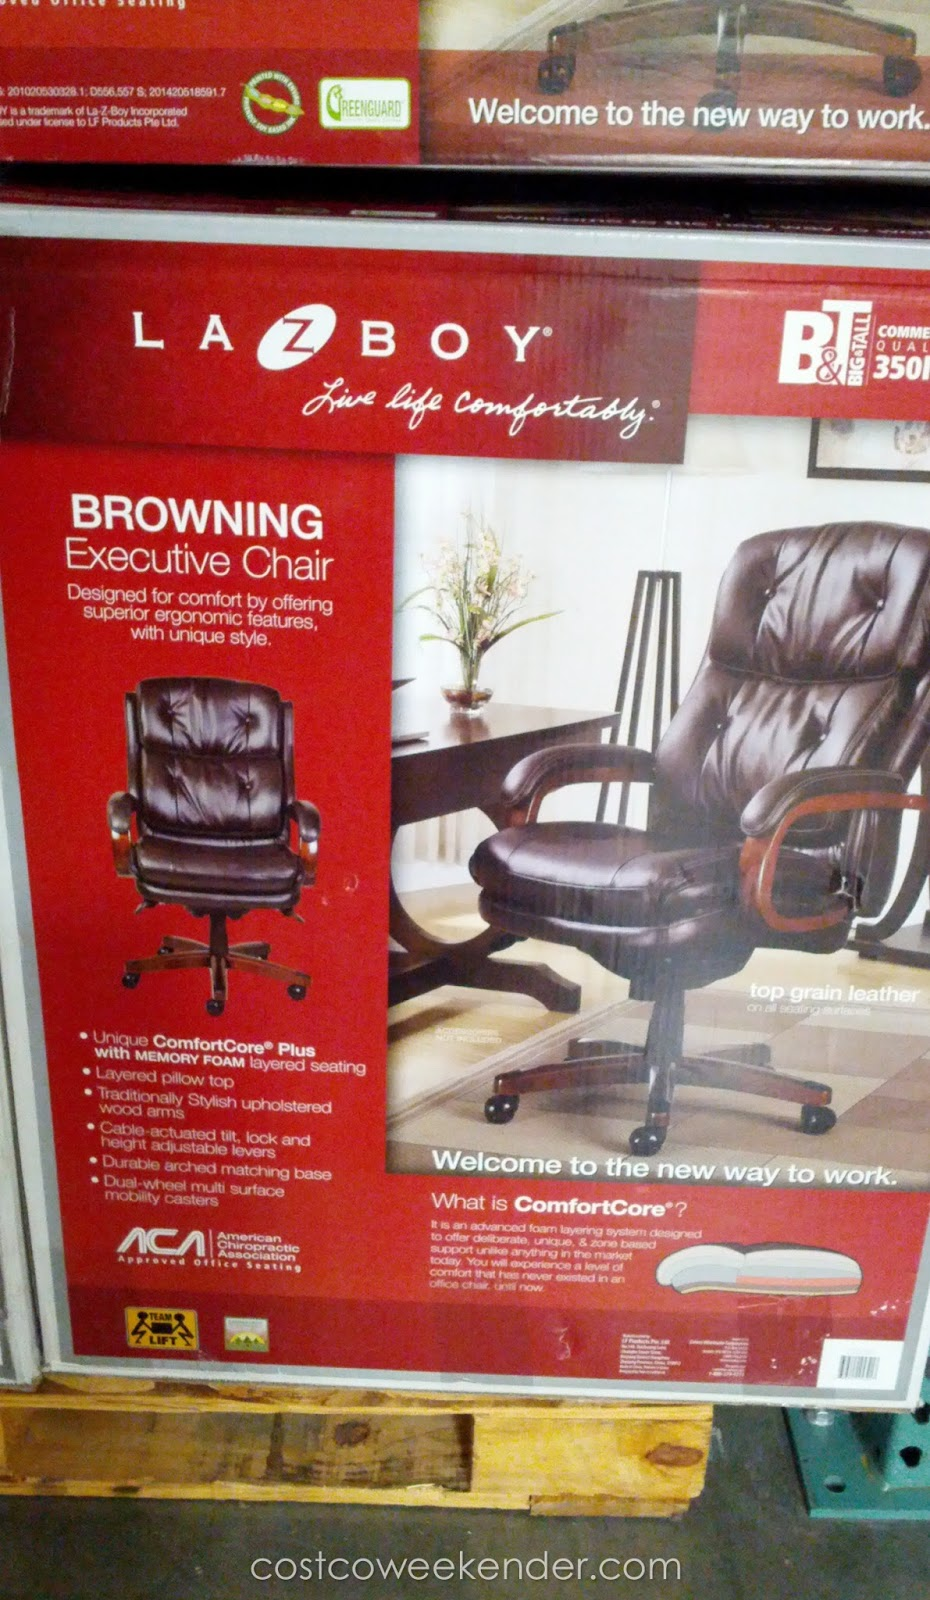 Lazboy Office Chair Okin Lift La Z Boy Browning Leather Executive Costco Weekender Bringing The Comfort Of Home To